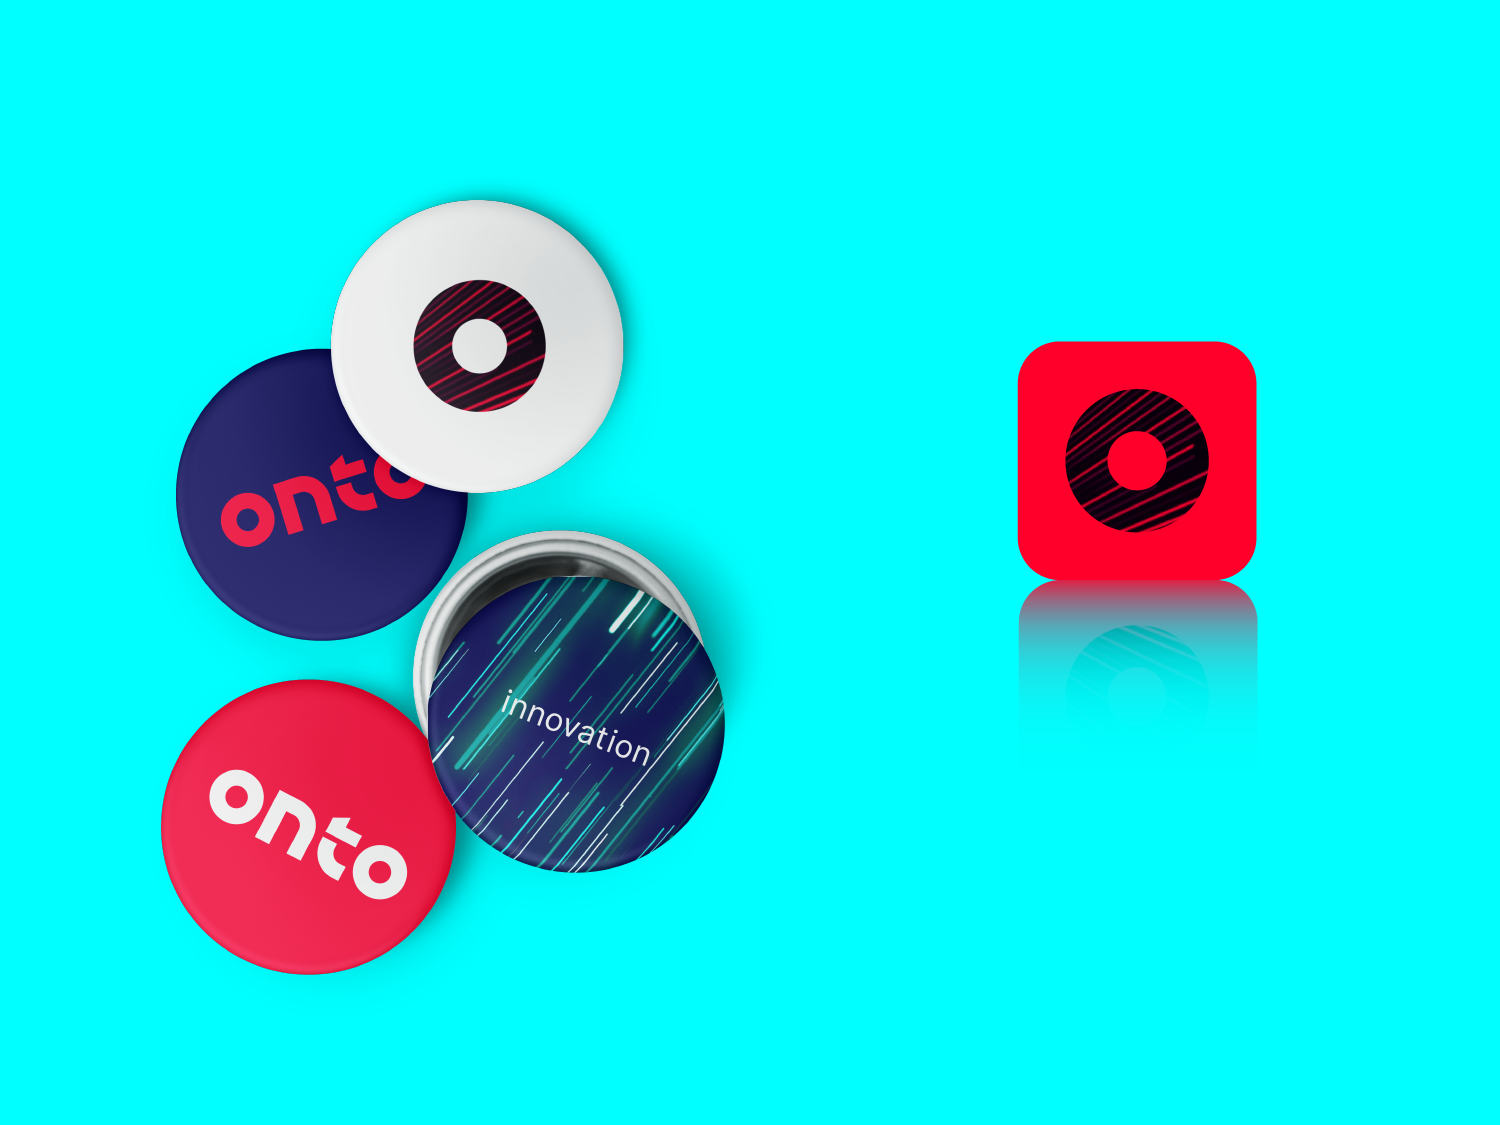 Onto Innovation buttons and app icon